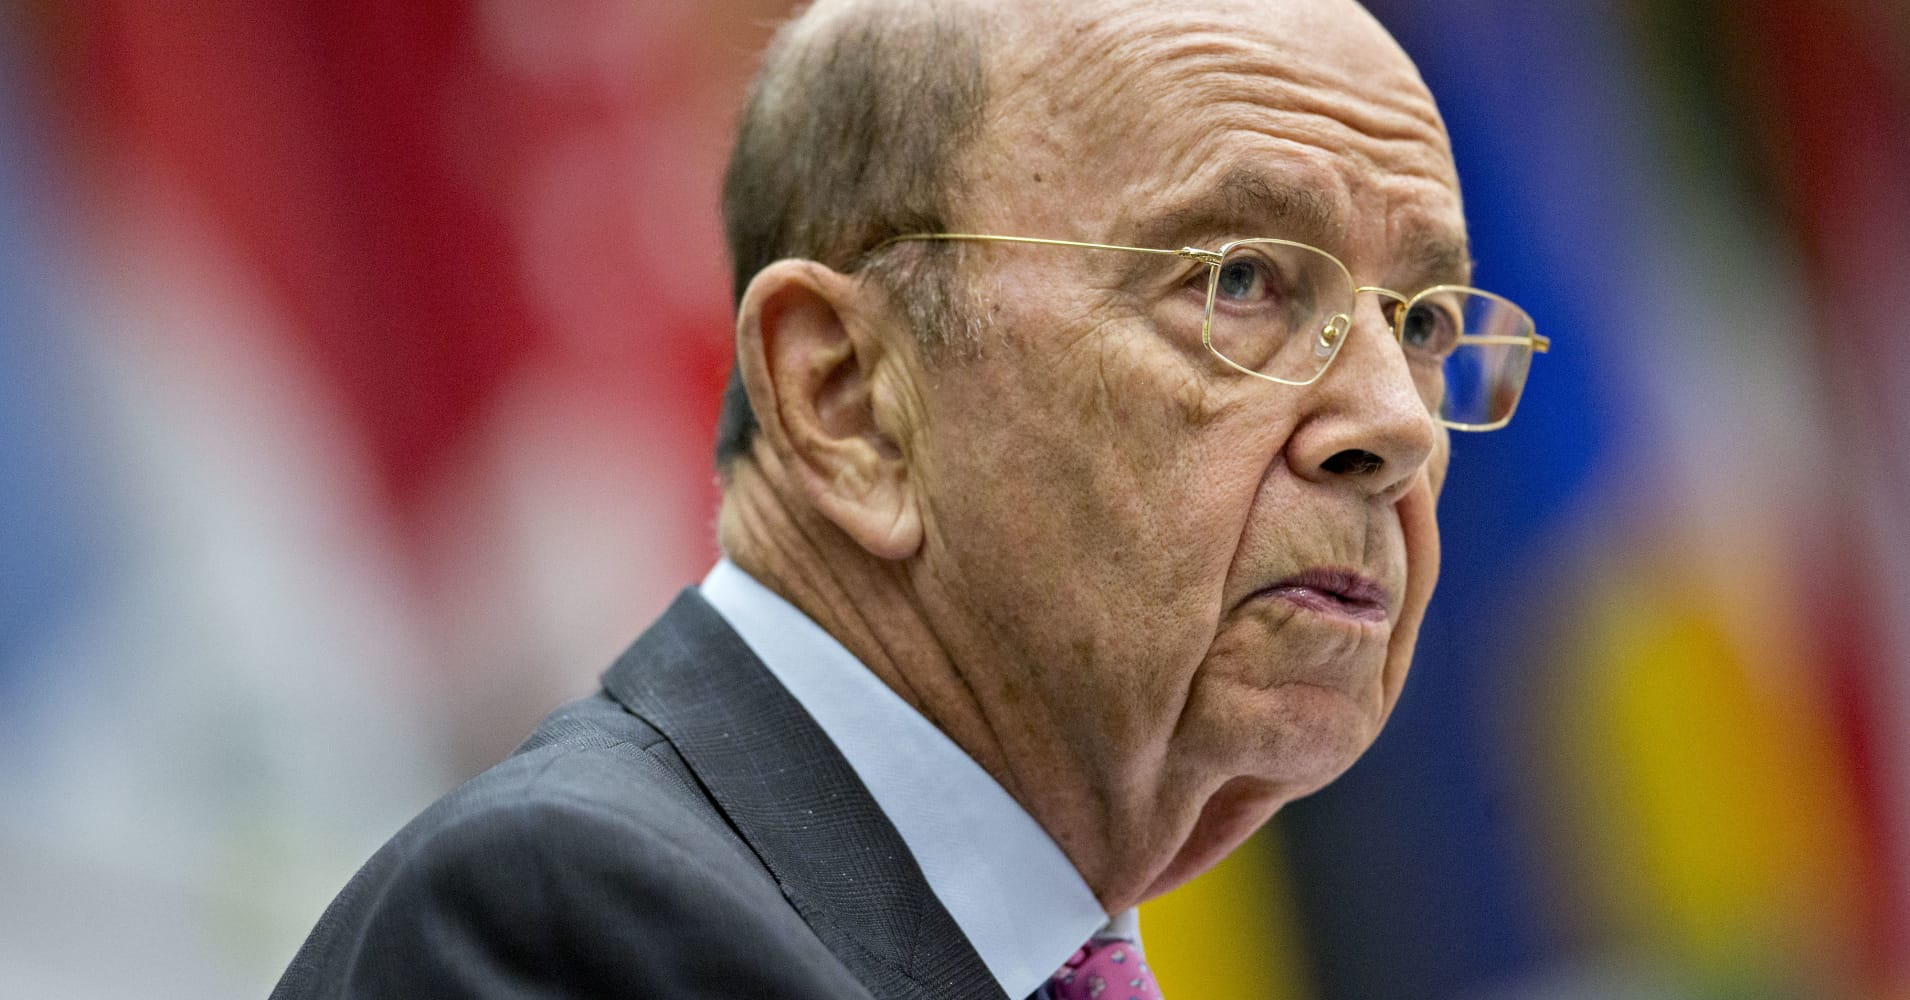 Live Blog: Commerce Secretary Wilbur Ross tells China action is needed on trade